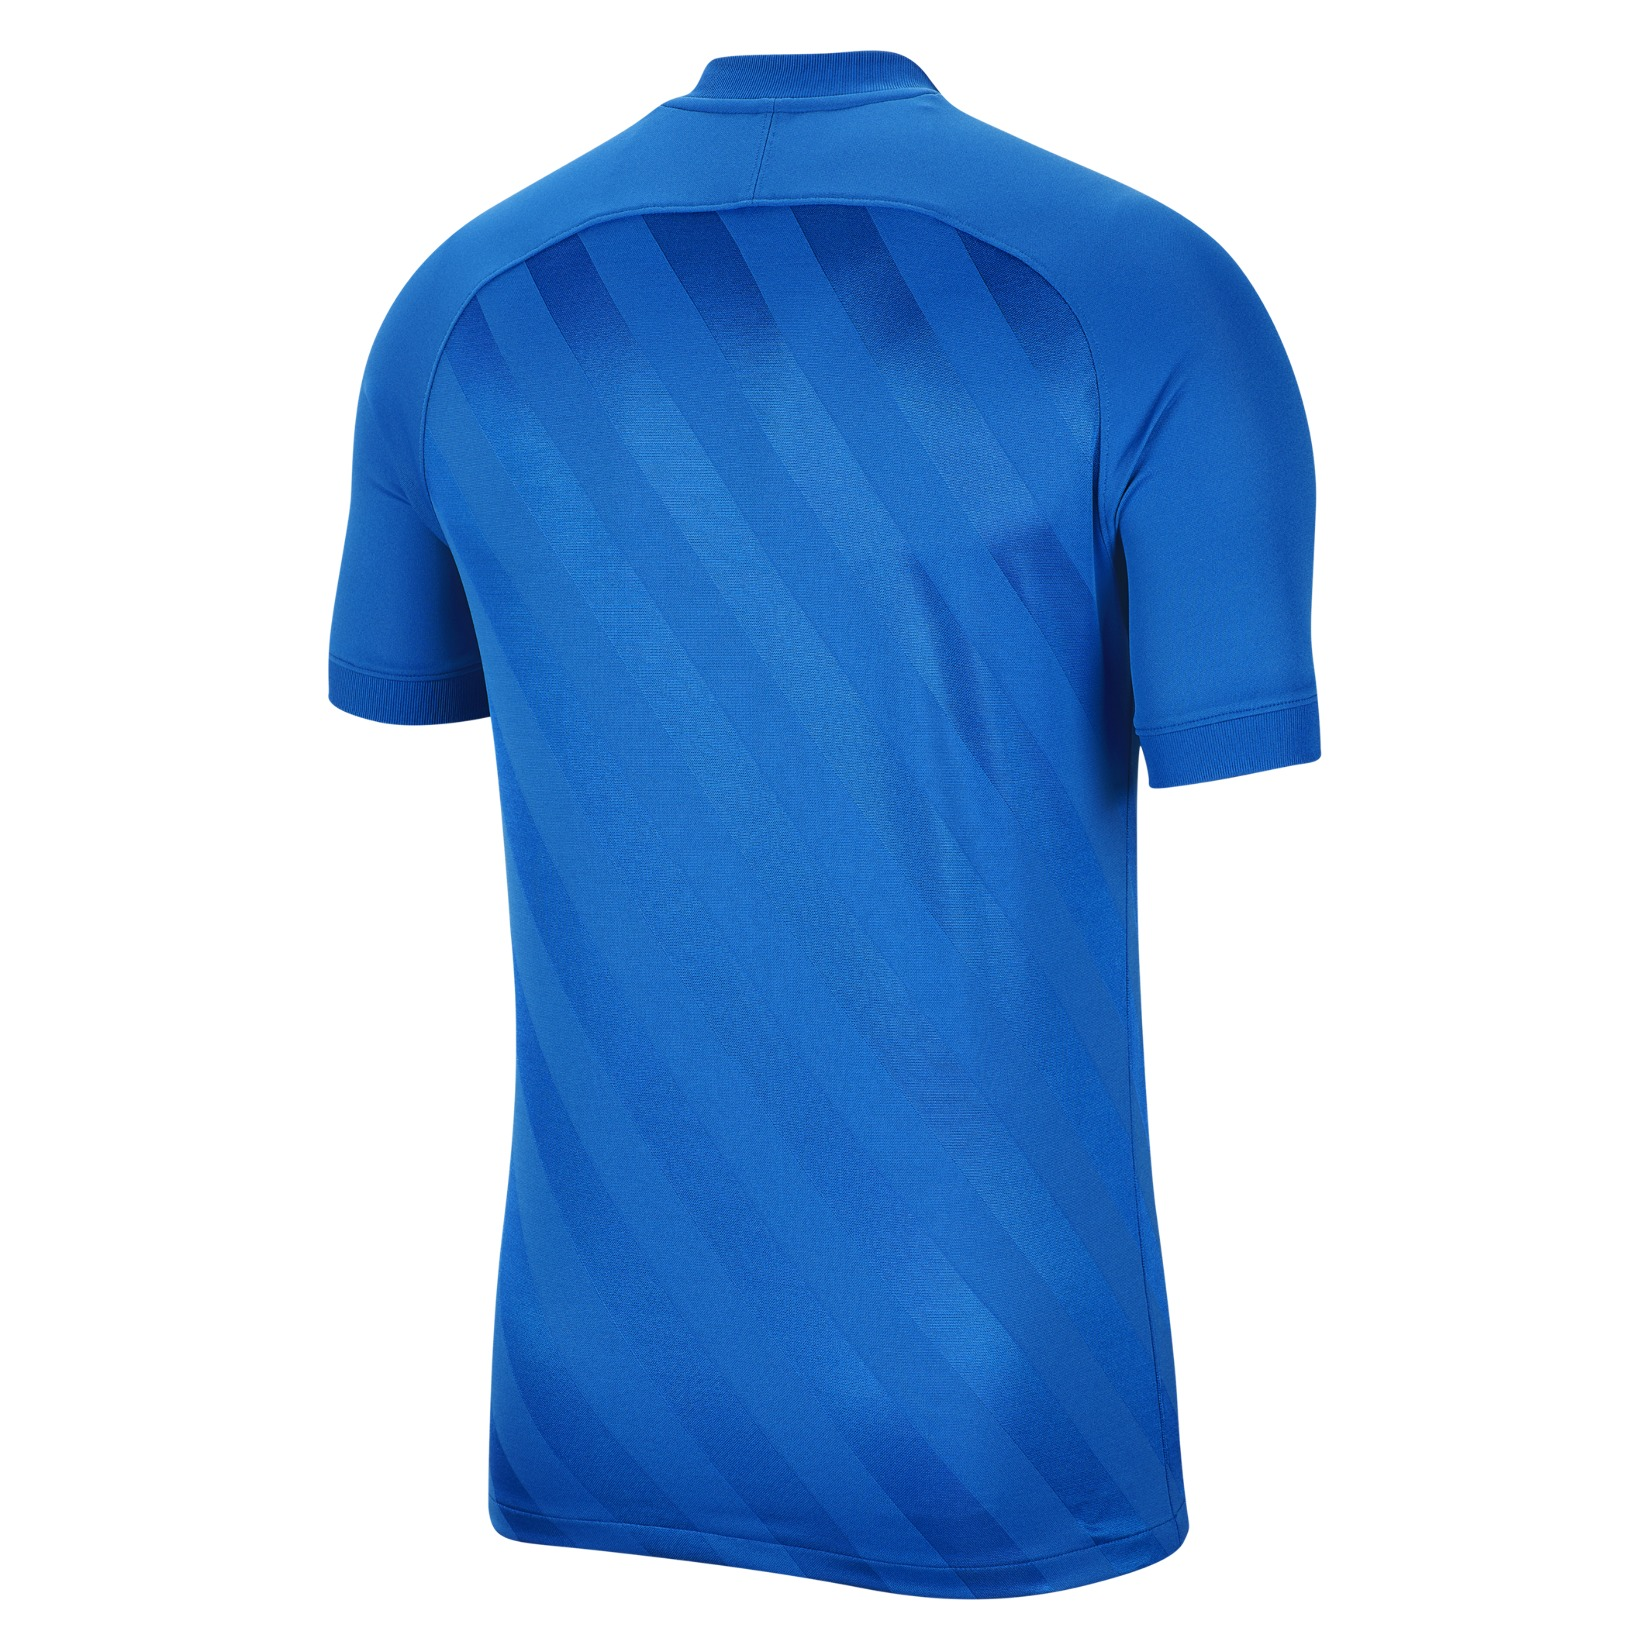 Nike Challenge III Dri-FIT  Short Sleeve Jersey Royal Blue-Royal Blue-White